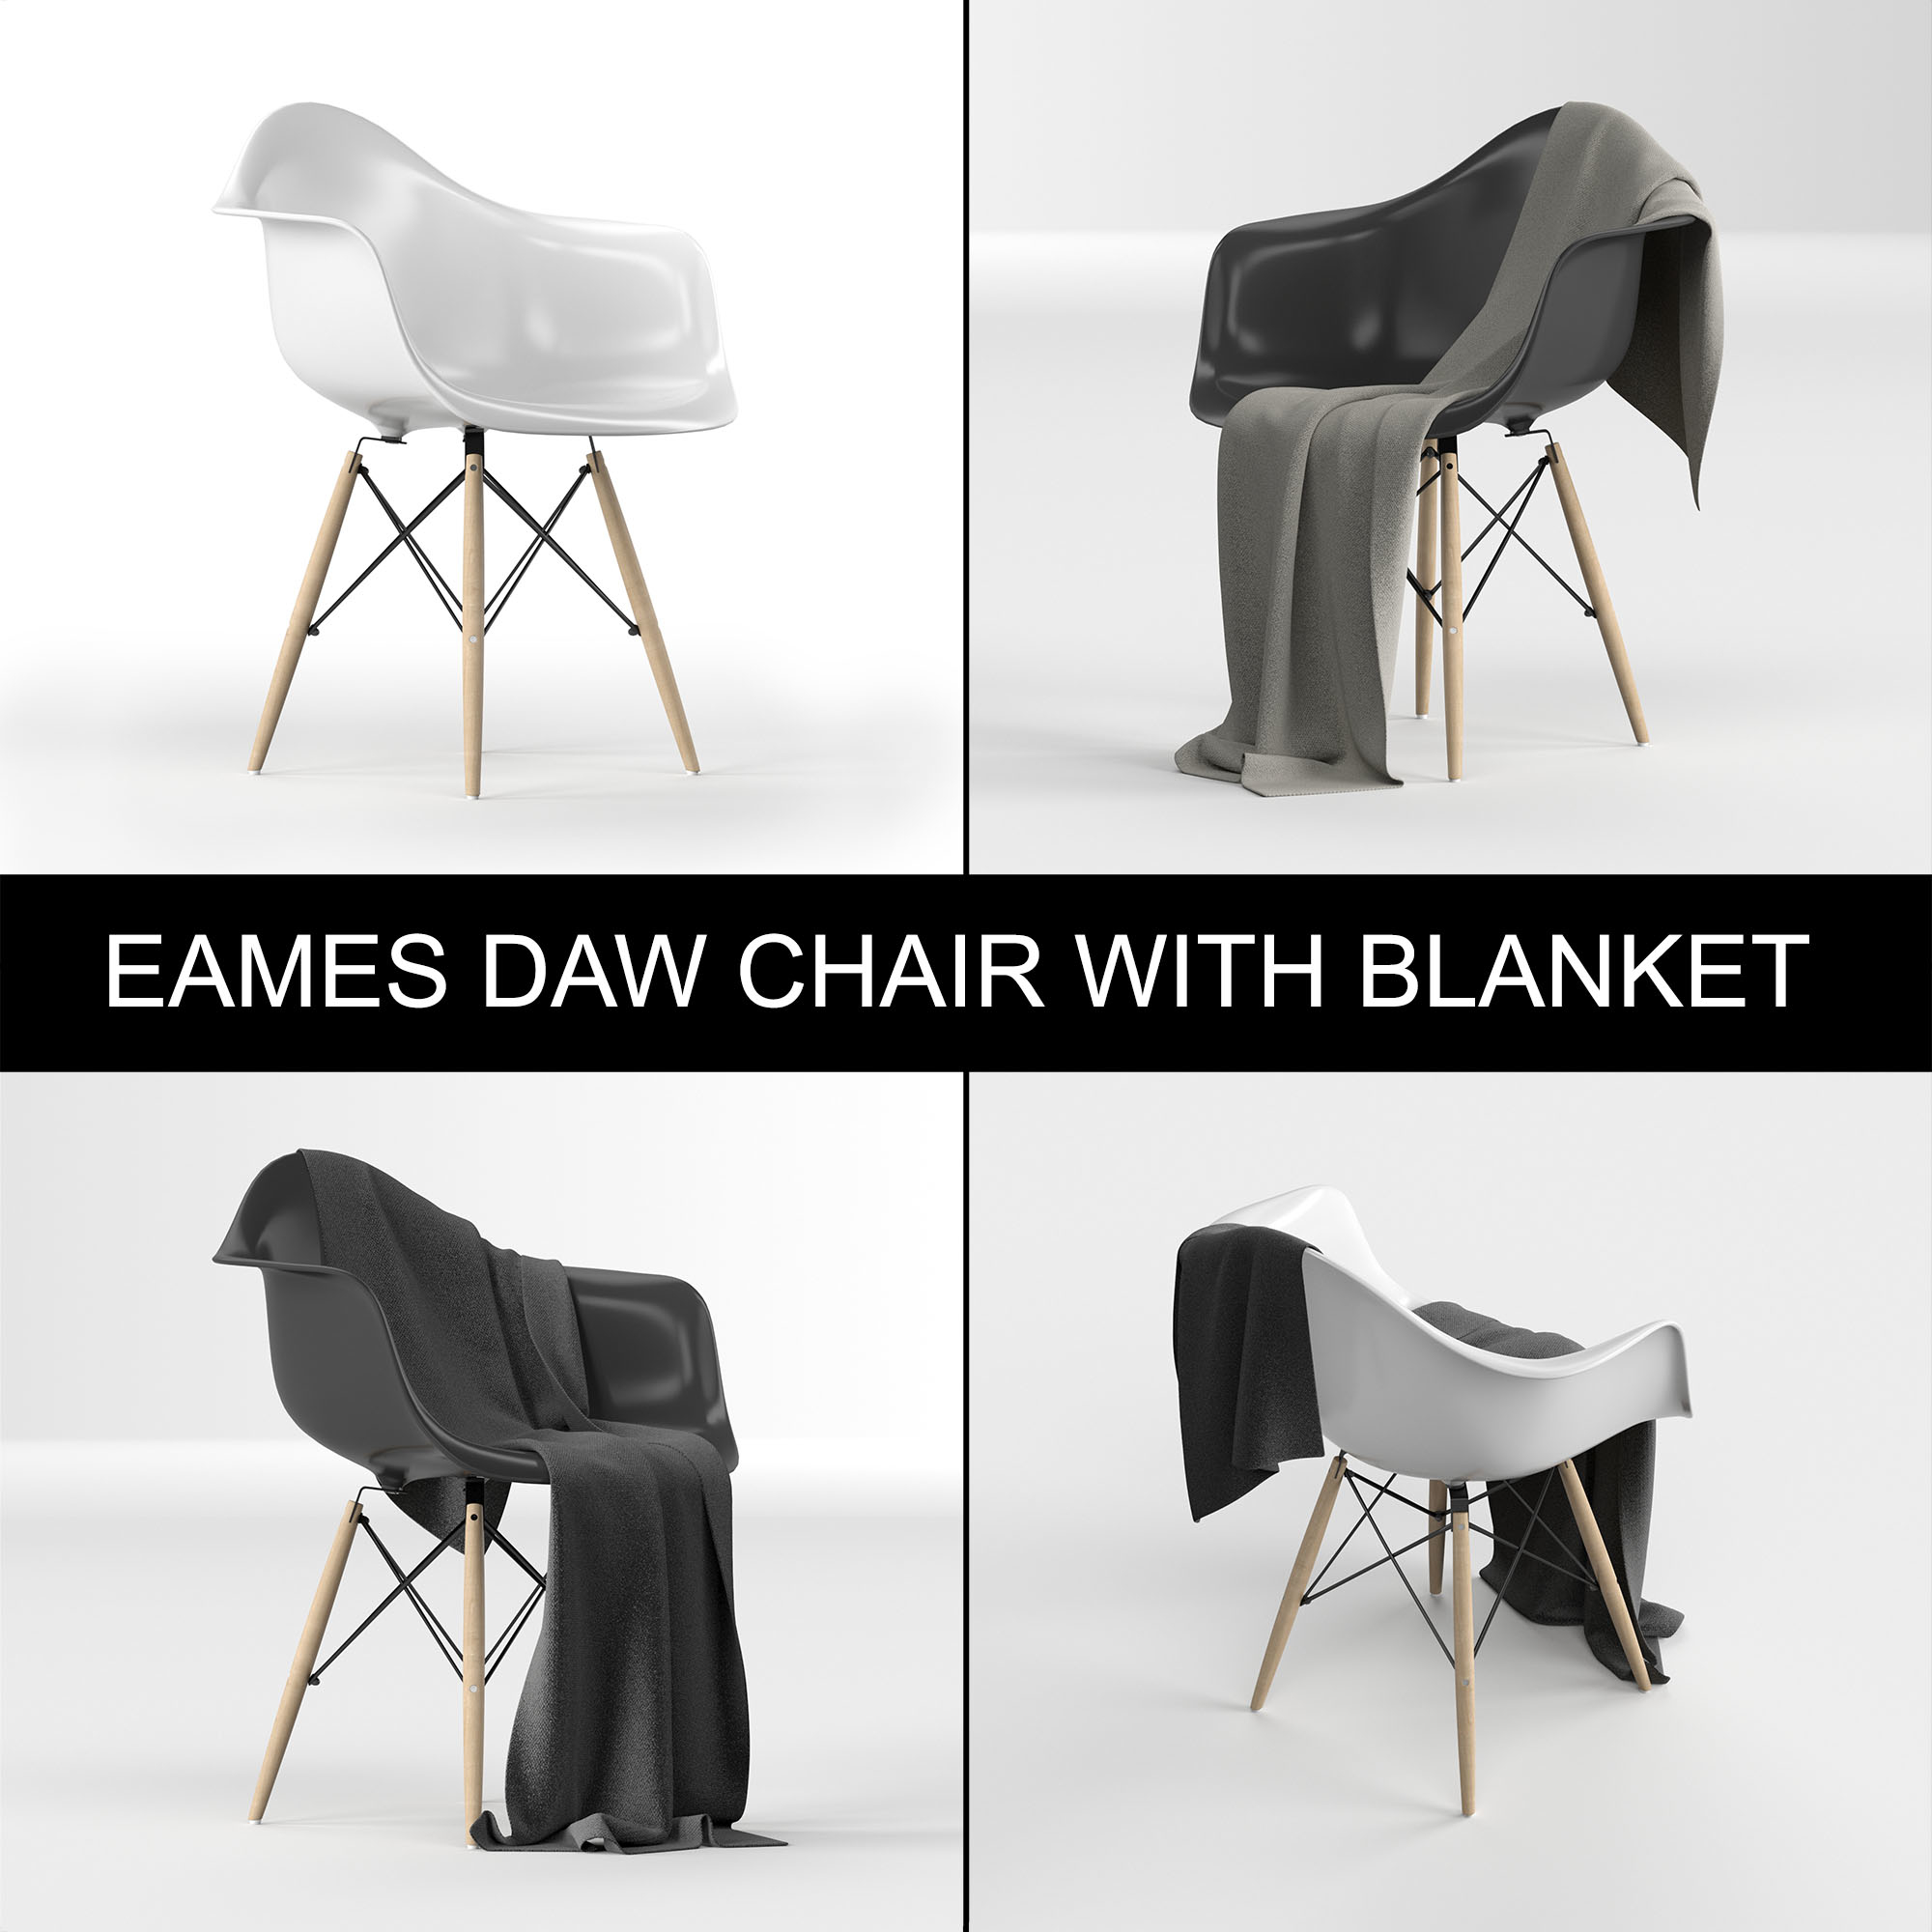 Outstanding Eames Plastic Armchair Daw Charles Ray Eames 1950 With Blanket Cloth Ocoug Best Dining Table And Chair Ideas Images Ocougorg